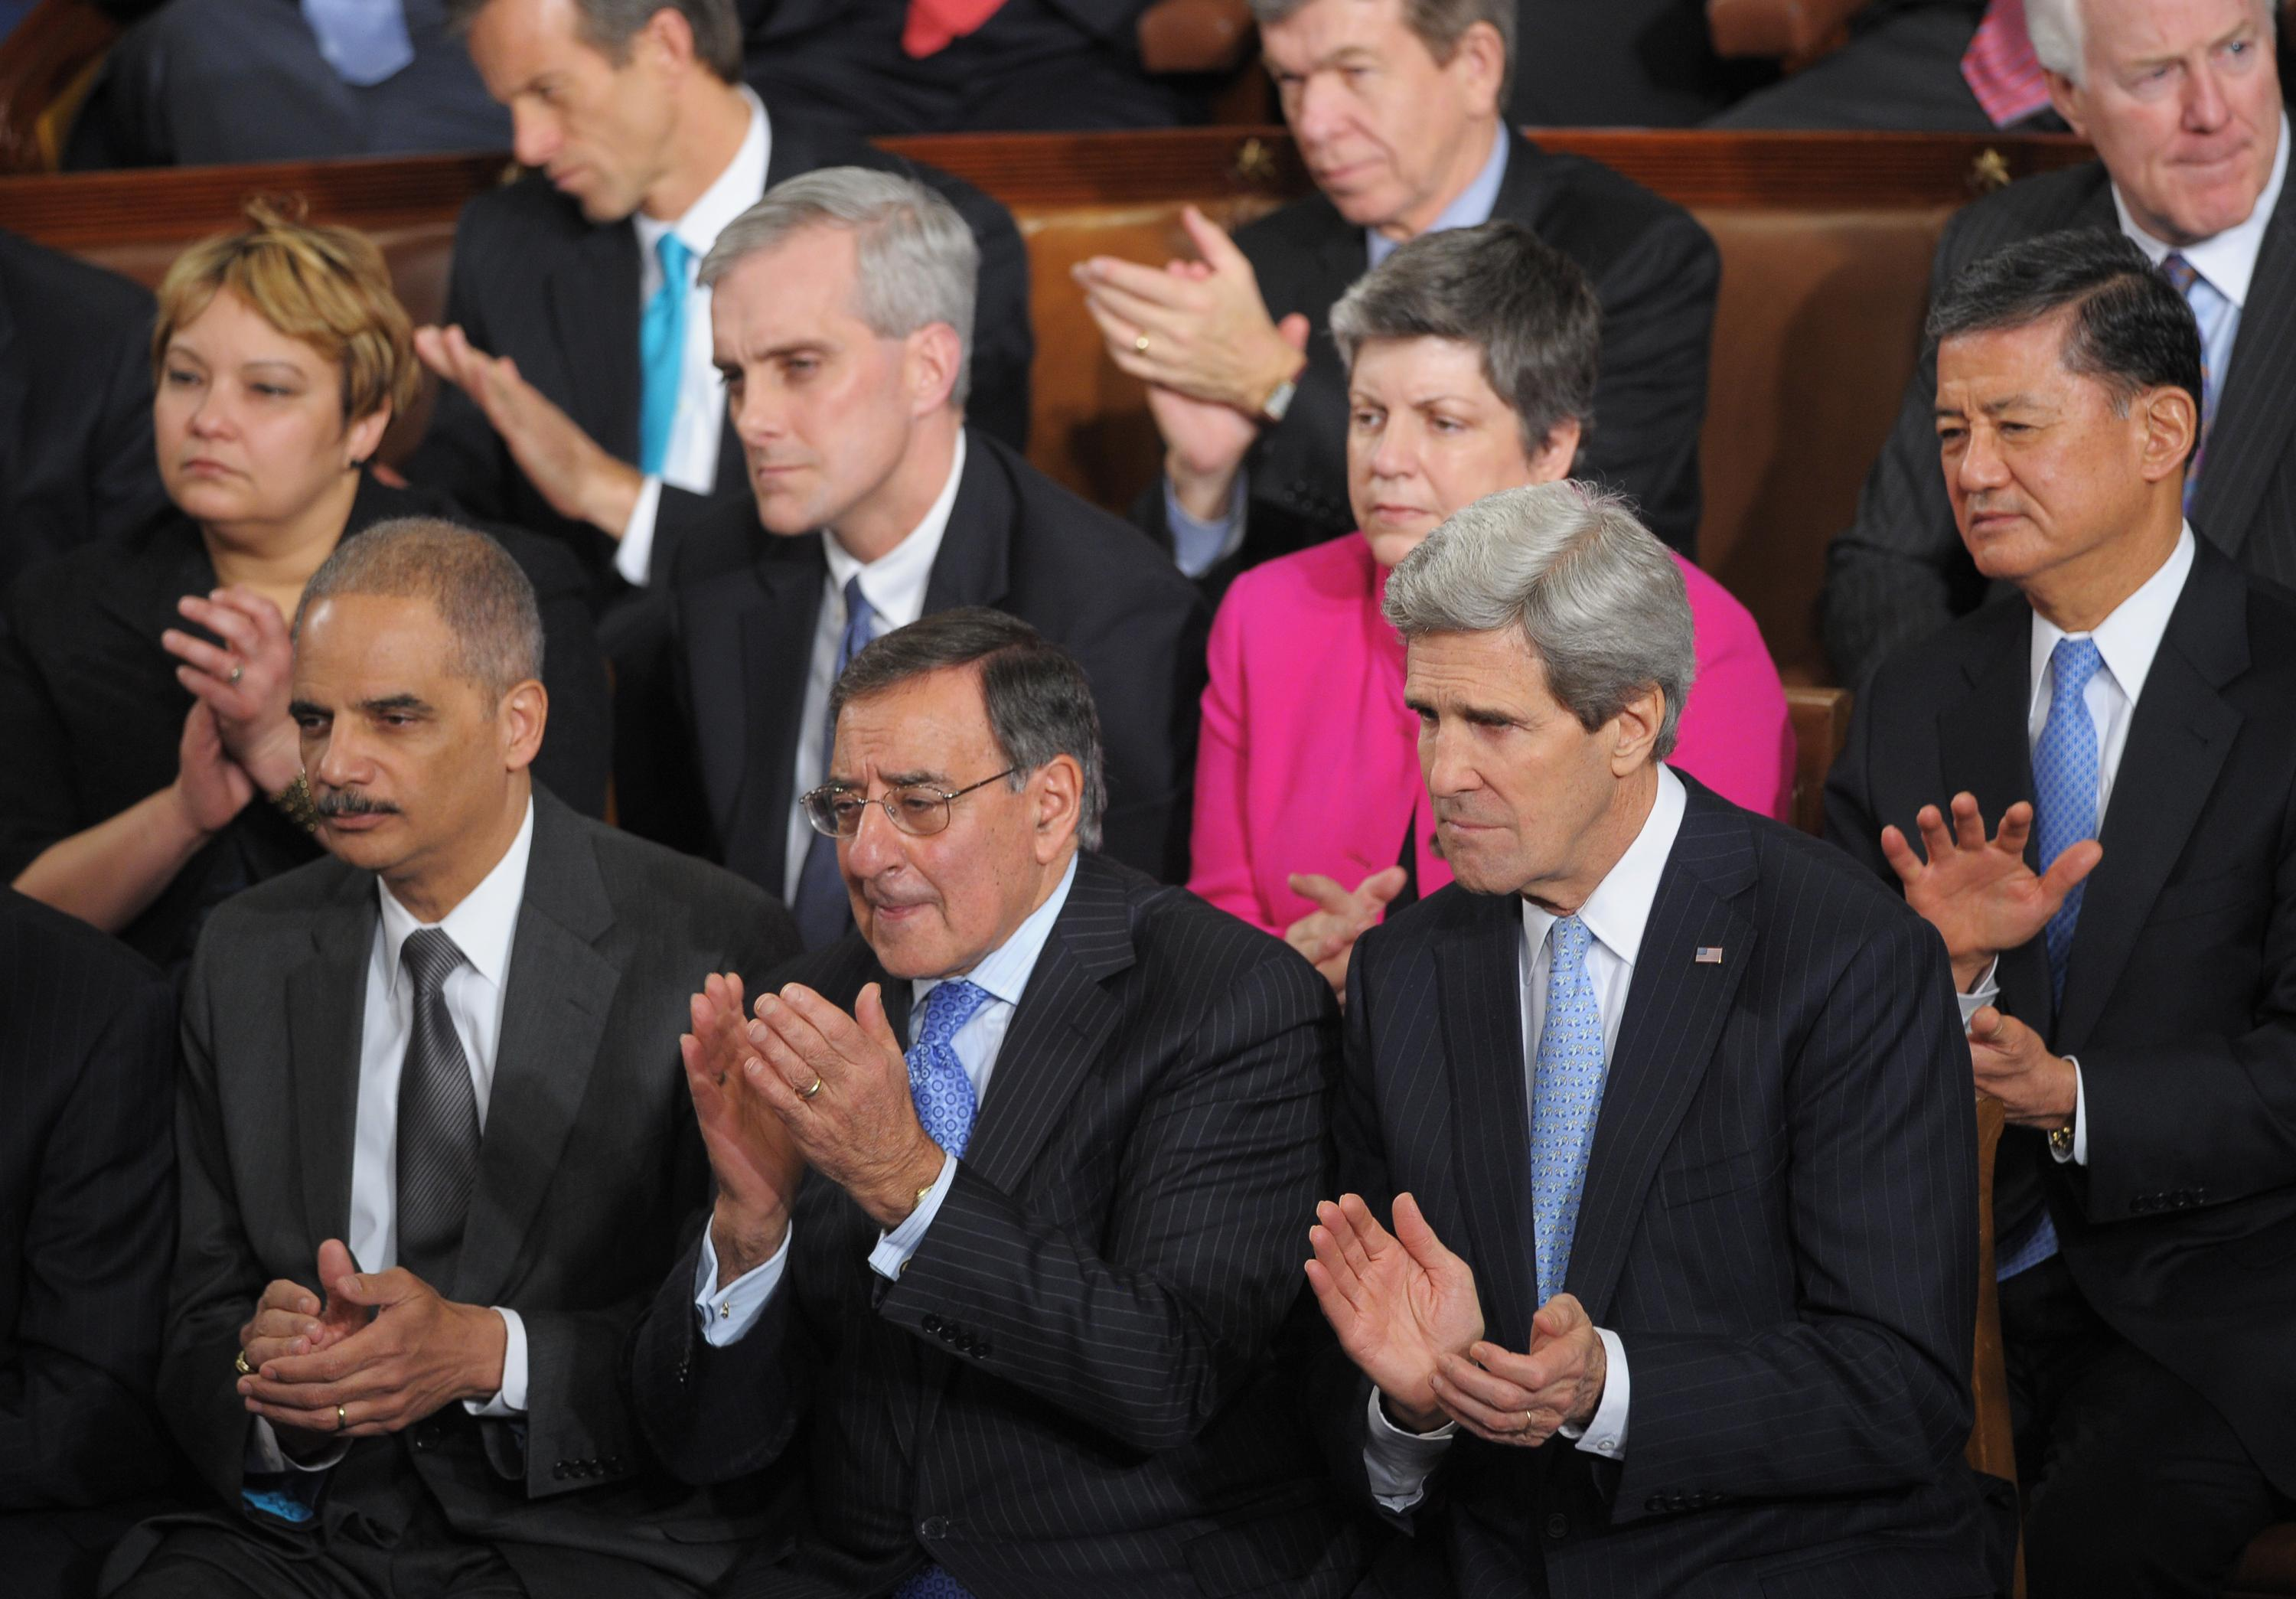 (Front row) Attorney General Eric Holder, outgoing Defense Secretary Leon Panetta, Secretary of State John Kerry, EPA Administrator Lisa Jackson, White House Chief of Staff Denis McDonough, Homeland Security Secretary Janet Napolitano and Veterans Affairs Secretary Eric Shinseki applaud as President Barack Obama delivers his State of the Union address before a joint session of Congress on February 12, 2013, at the U.S. Capitol in Washington, D.C.